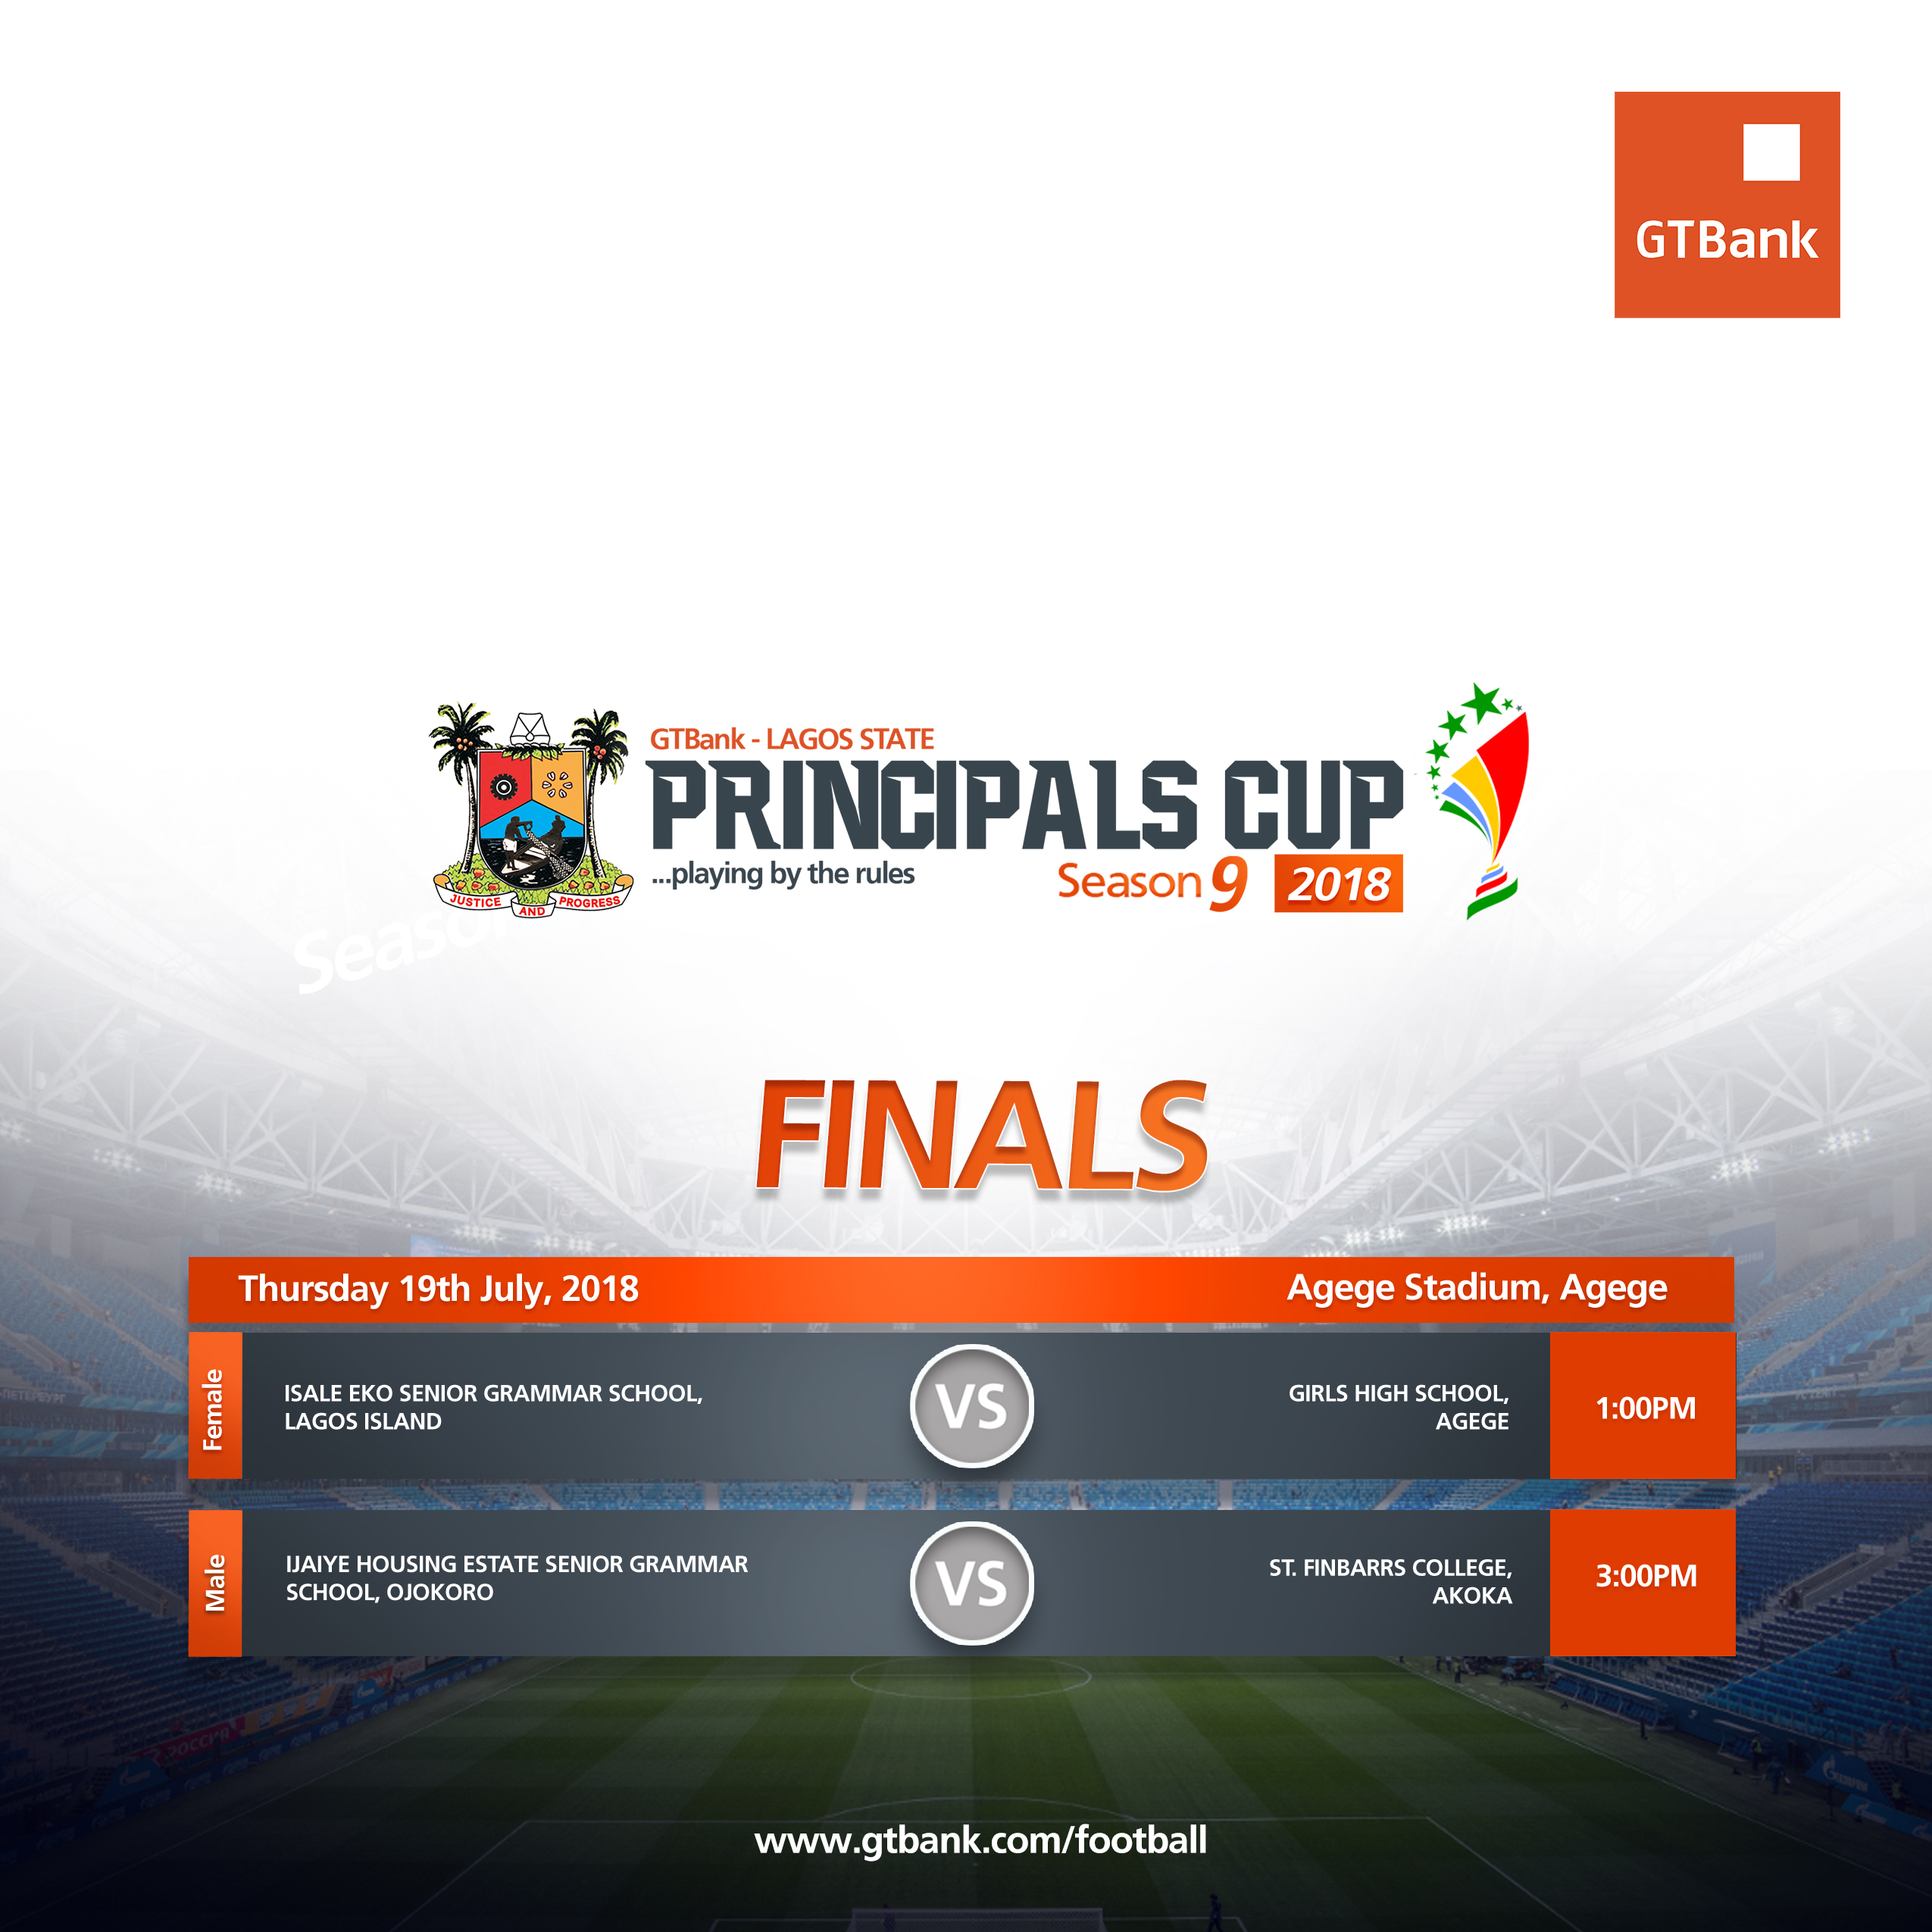 GTBank Lagos State Principals Cup Season 9 Finals holds Thursday 19th July, 2018